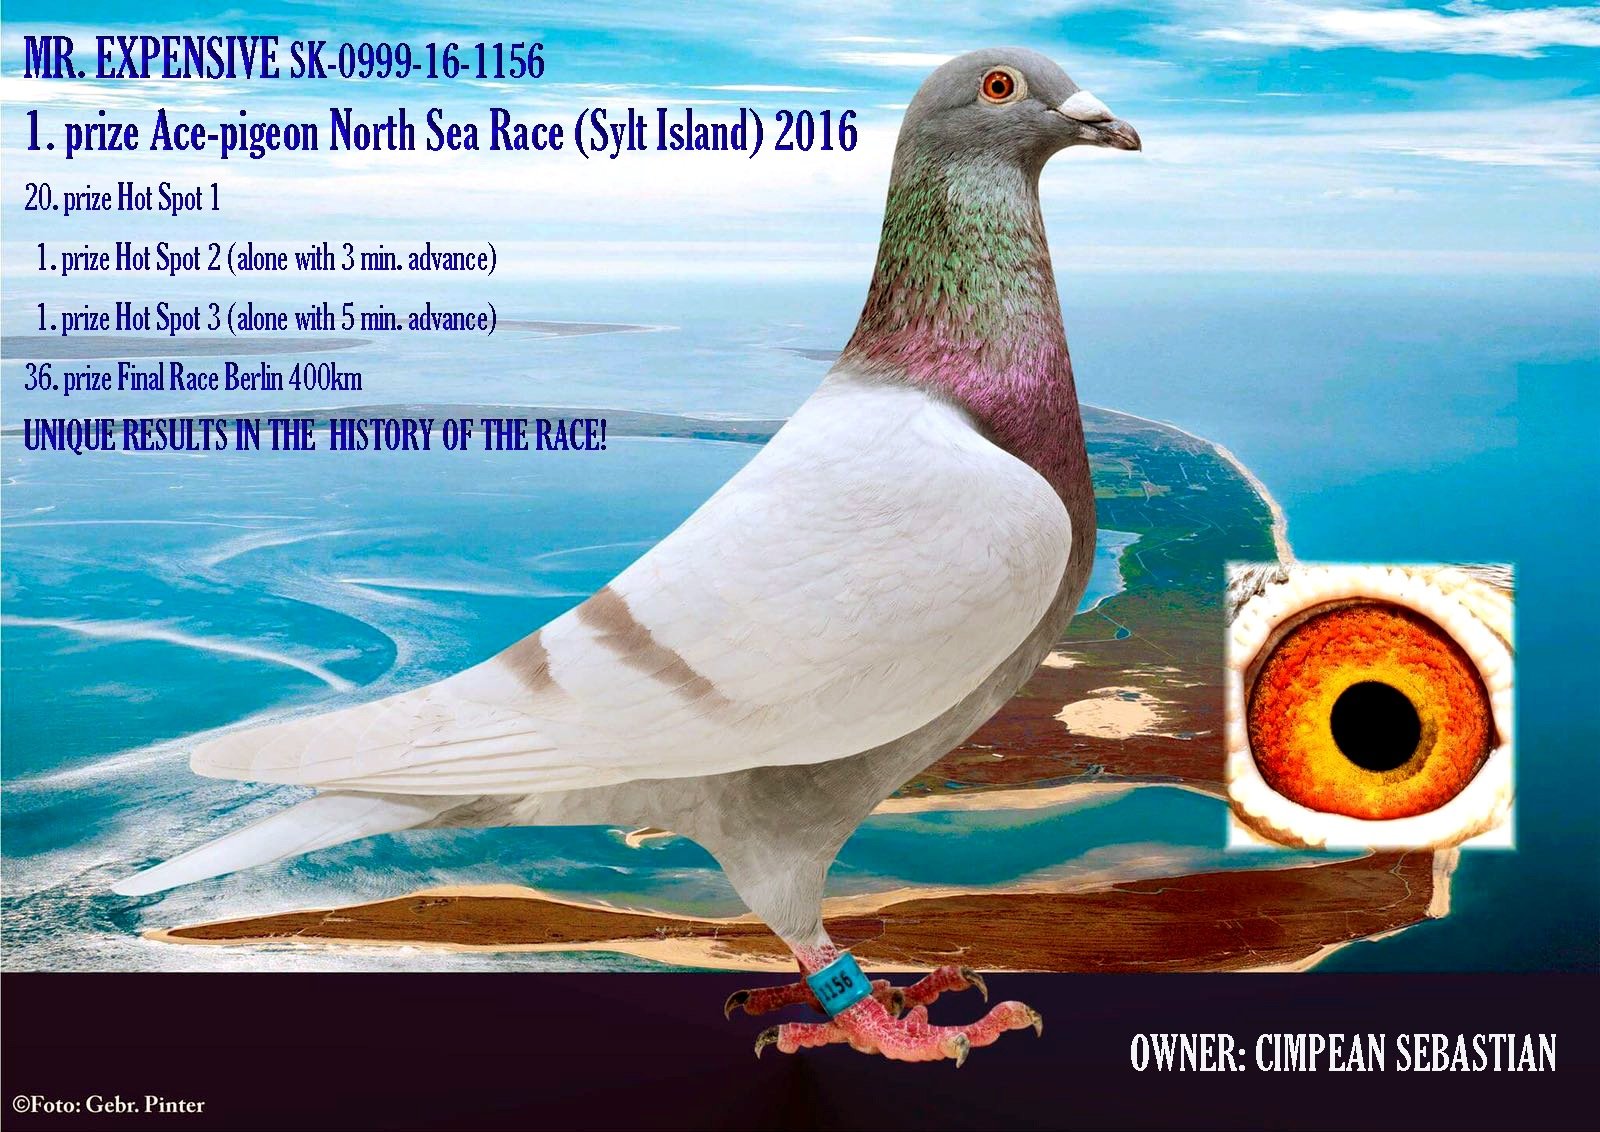 IT 18 408094 F - 1 Ace pigeon North Sea Race x sister 1 Ace pigeon As Golden